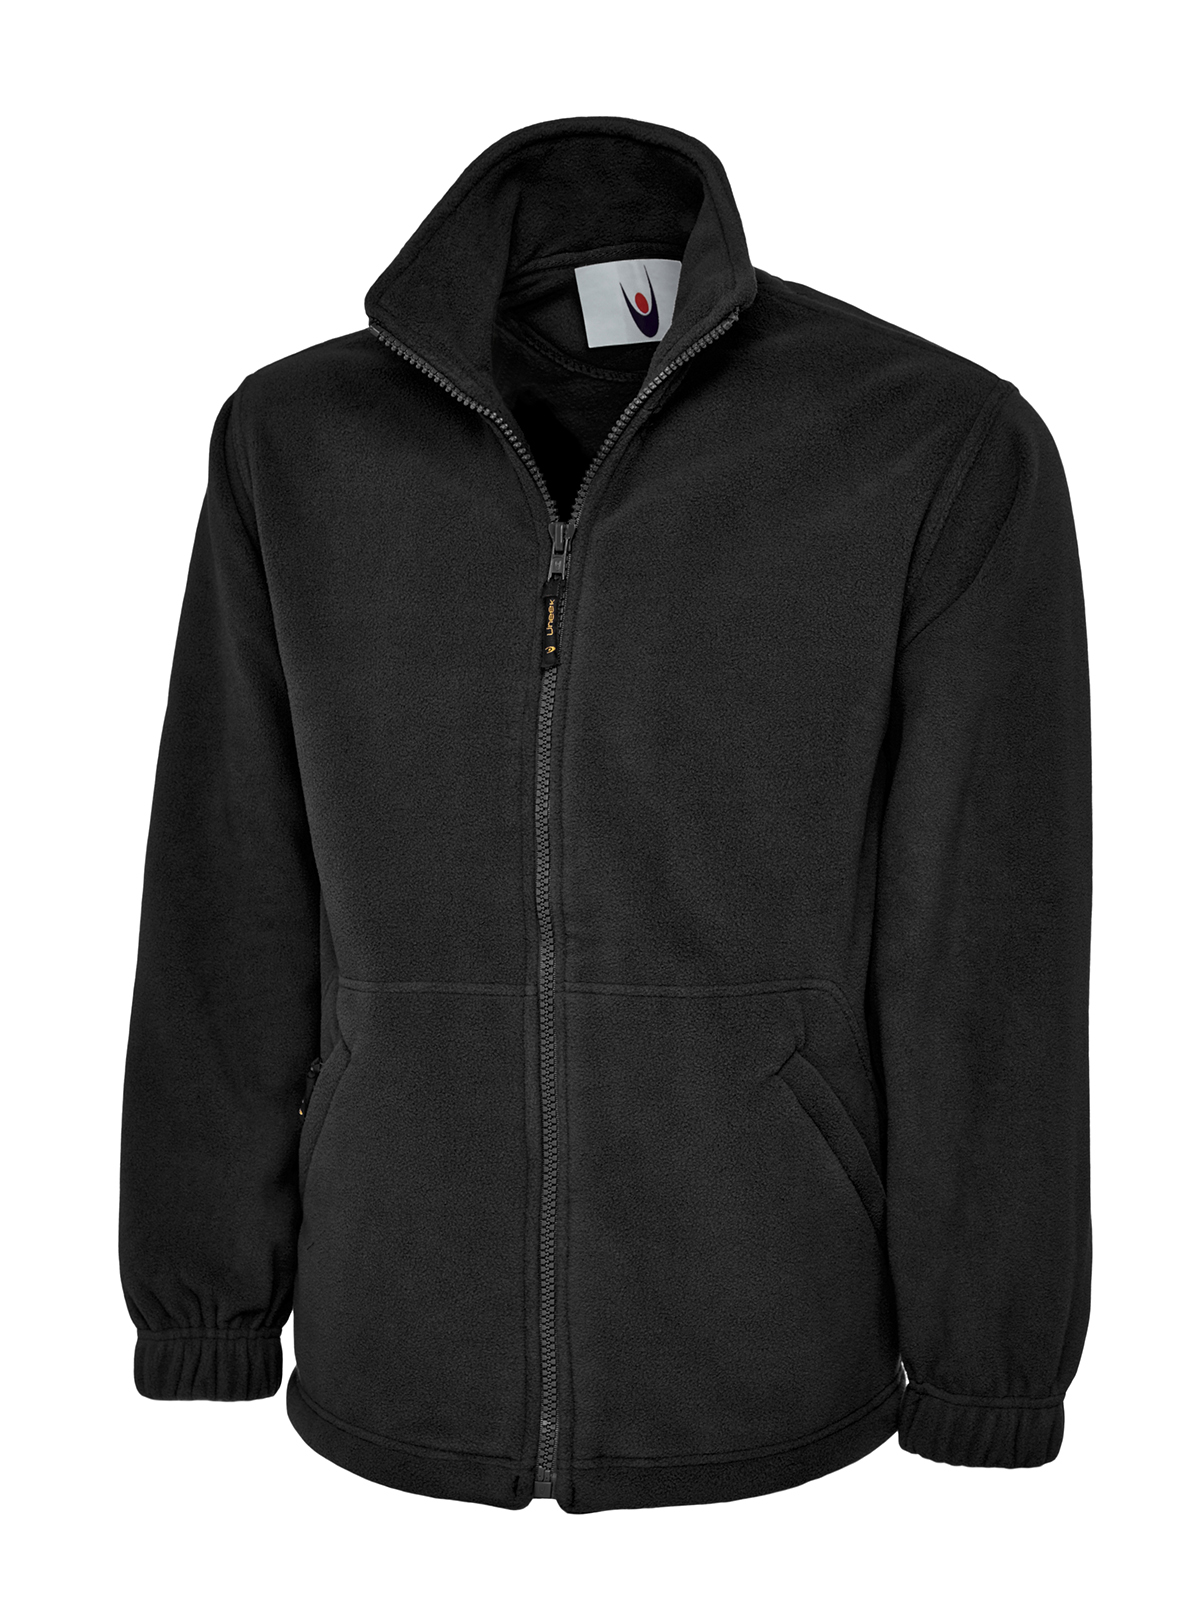 Uneek UC604 Classic Full Zip Fleece Jacket A